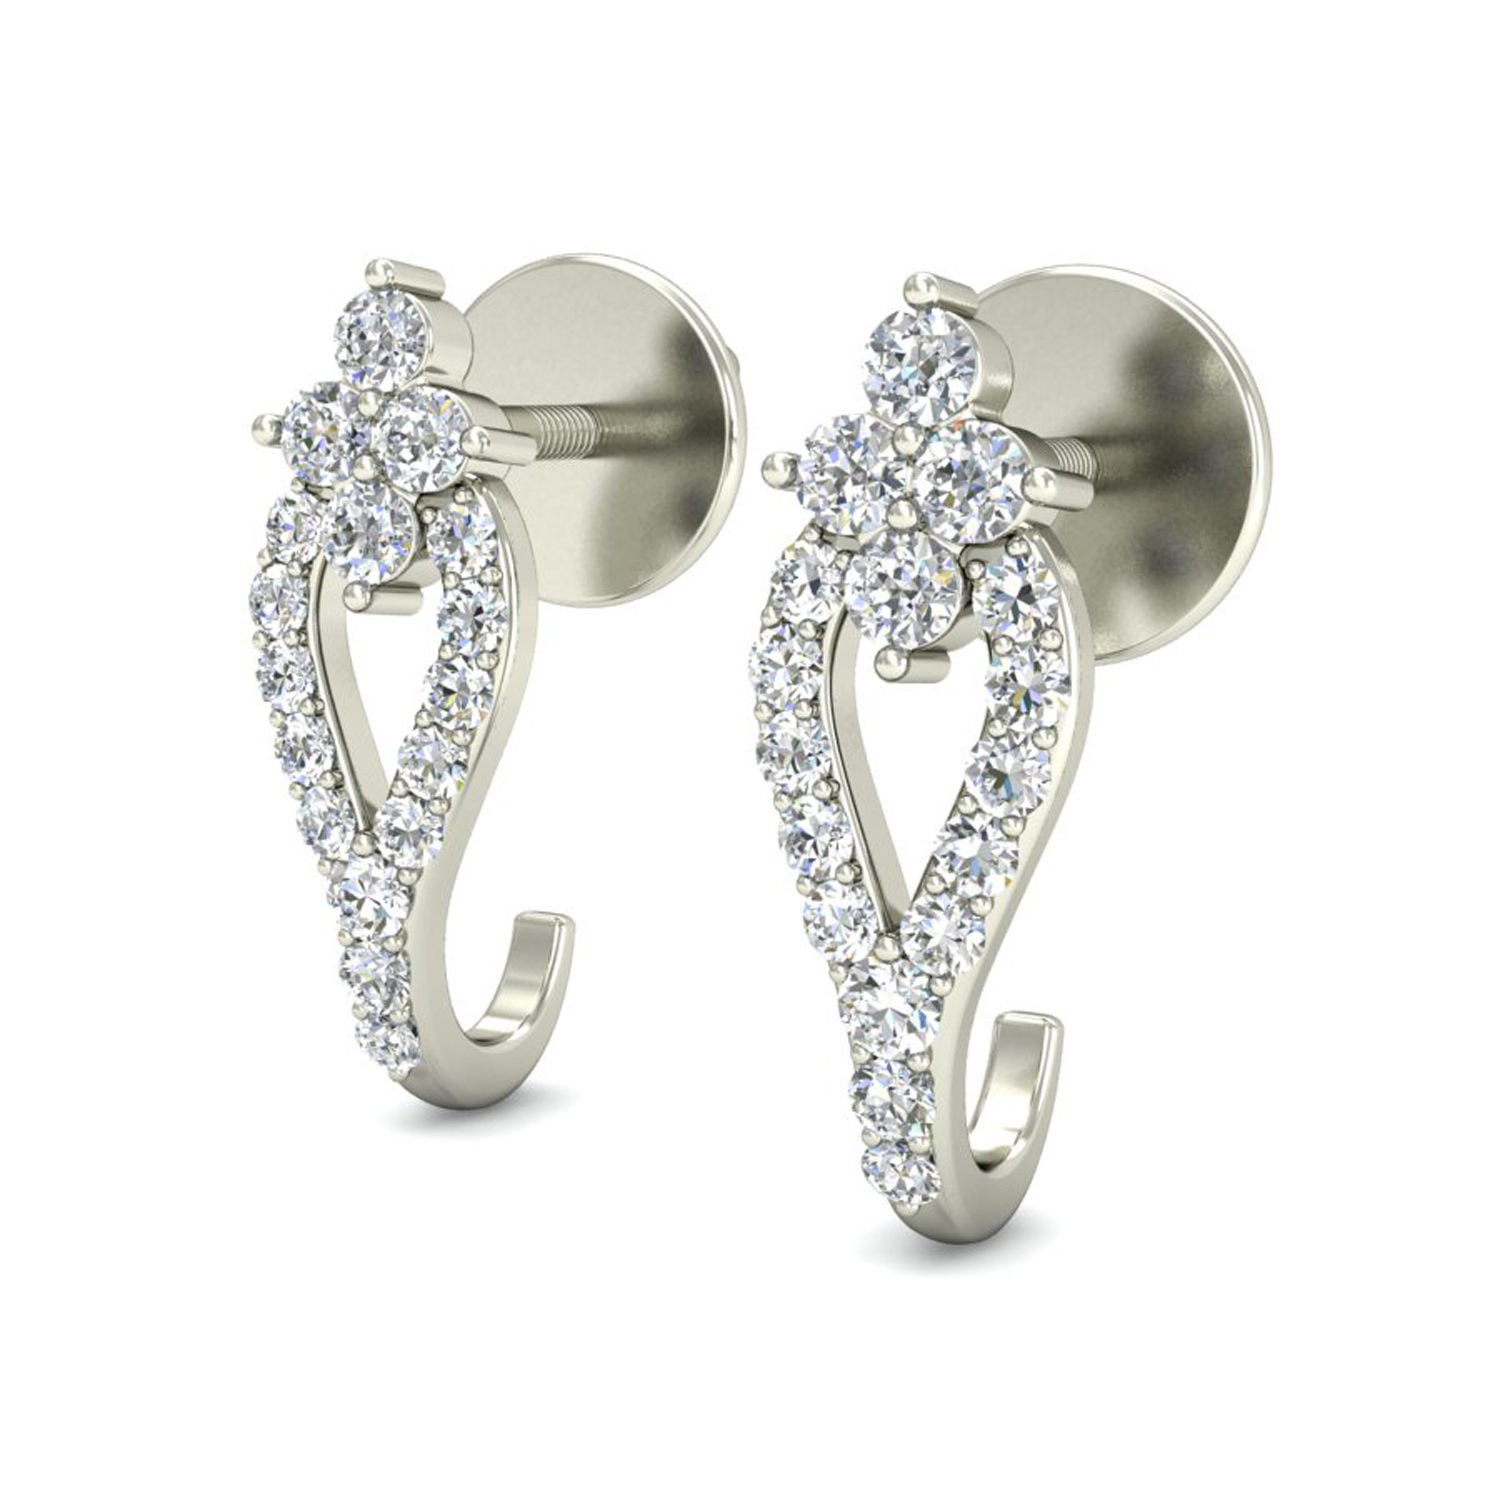 diamond earrings for women natural gold beautiful studs. Black Bedroom Furniture Sets. Home Design Ideas